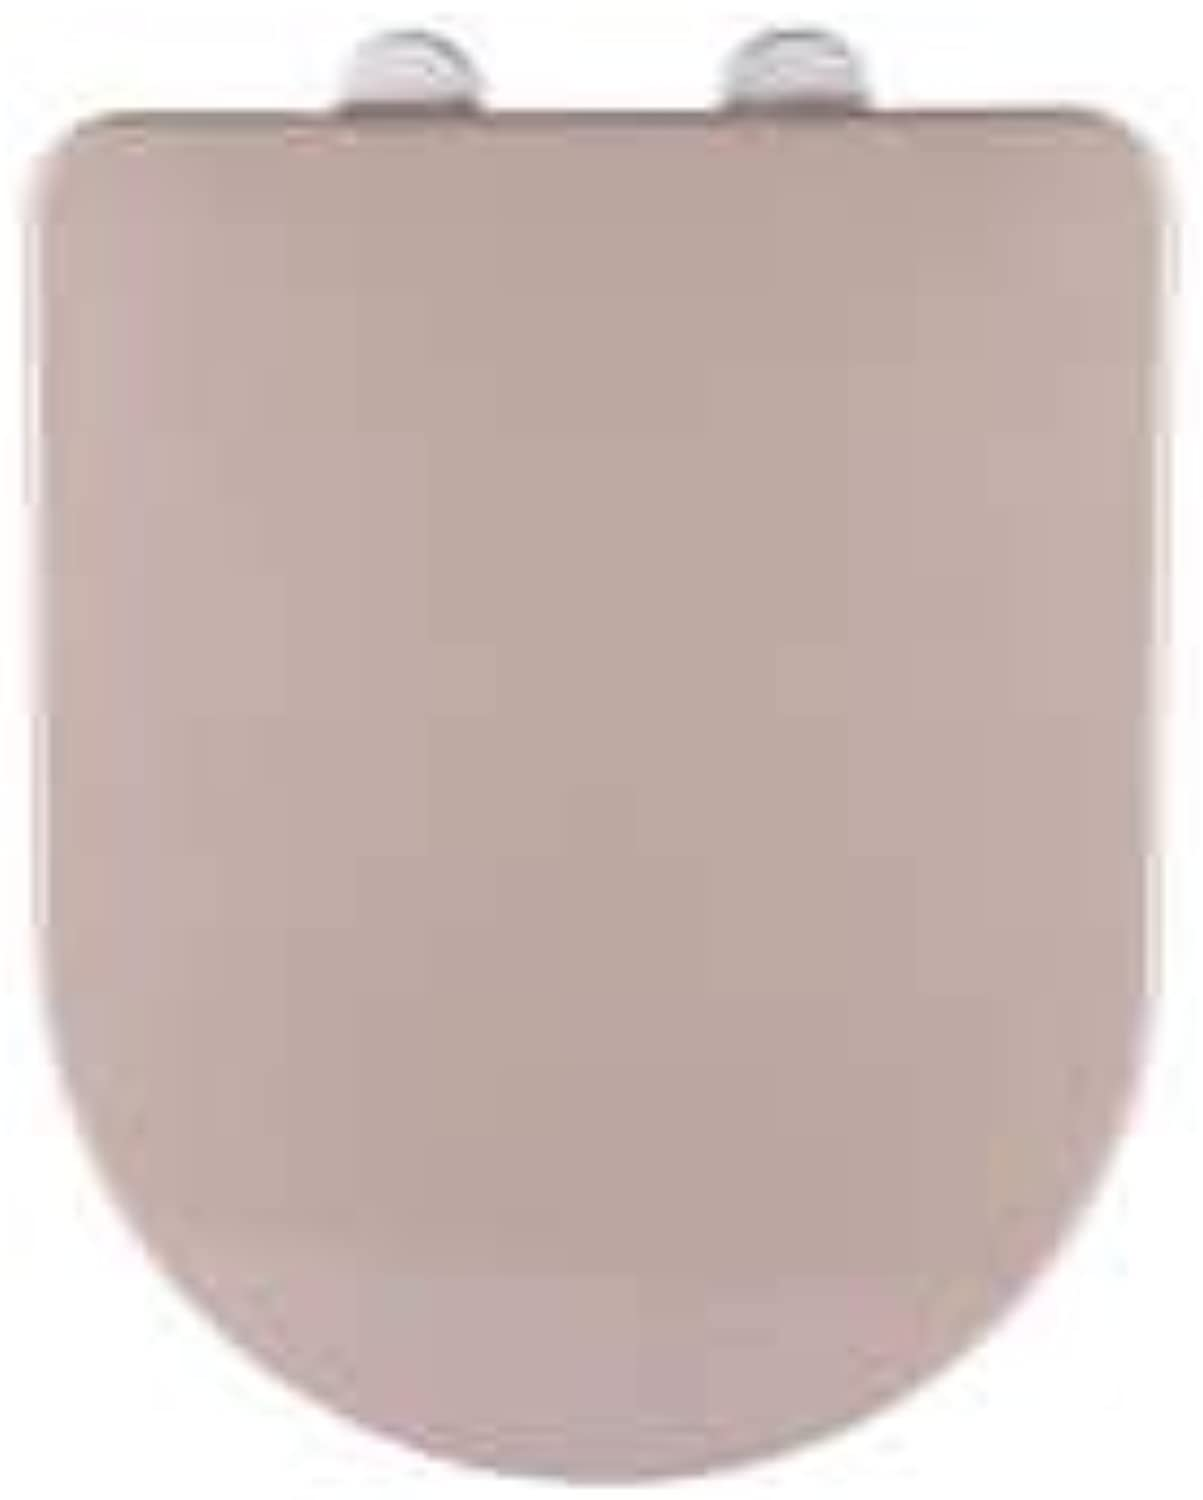 Toilet Seats U-Type Brown Toilet Lid with Antibacterial Urea-Formaldehyde Resin Easy to Install Ultra Resistant Decorative Toilet Seat Cover Suitable for Families Bathrooms Hotels